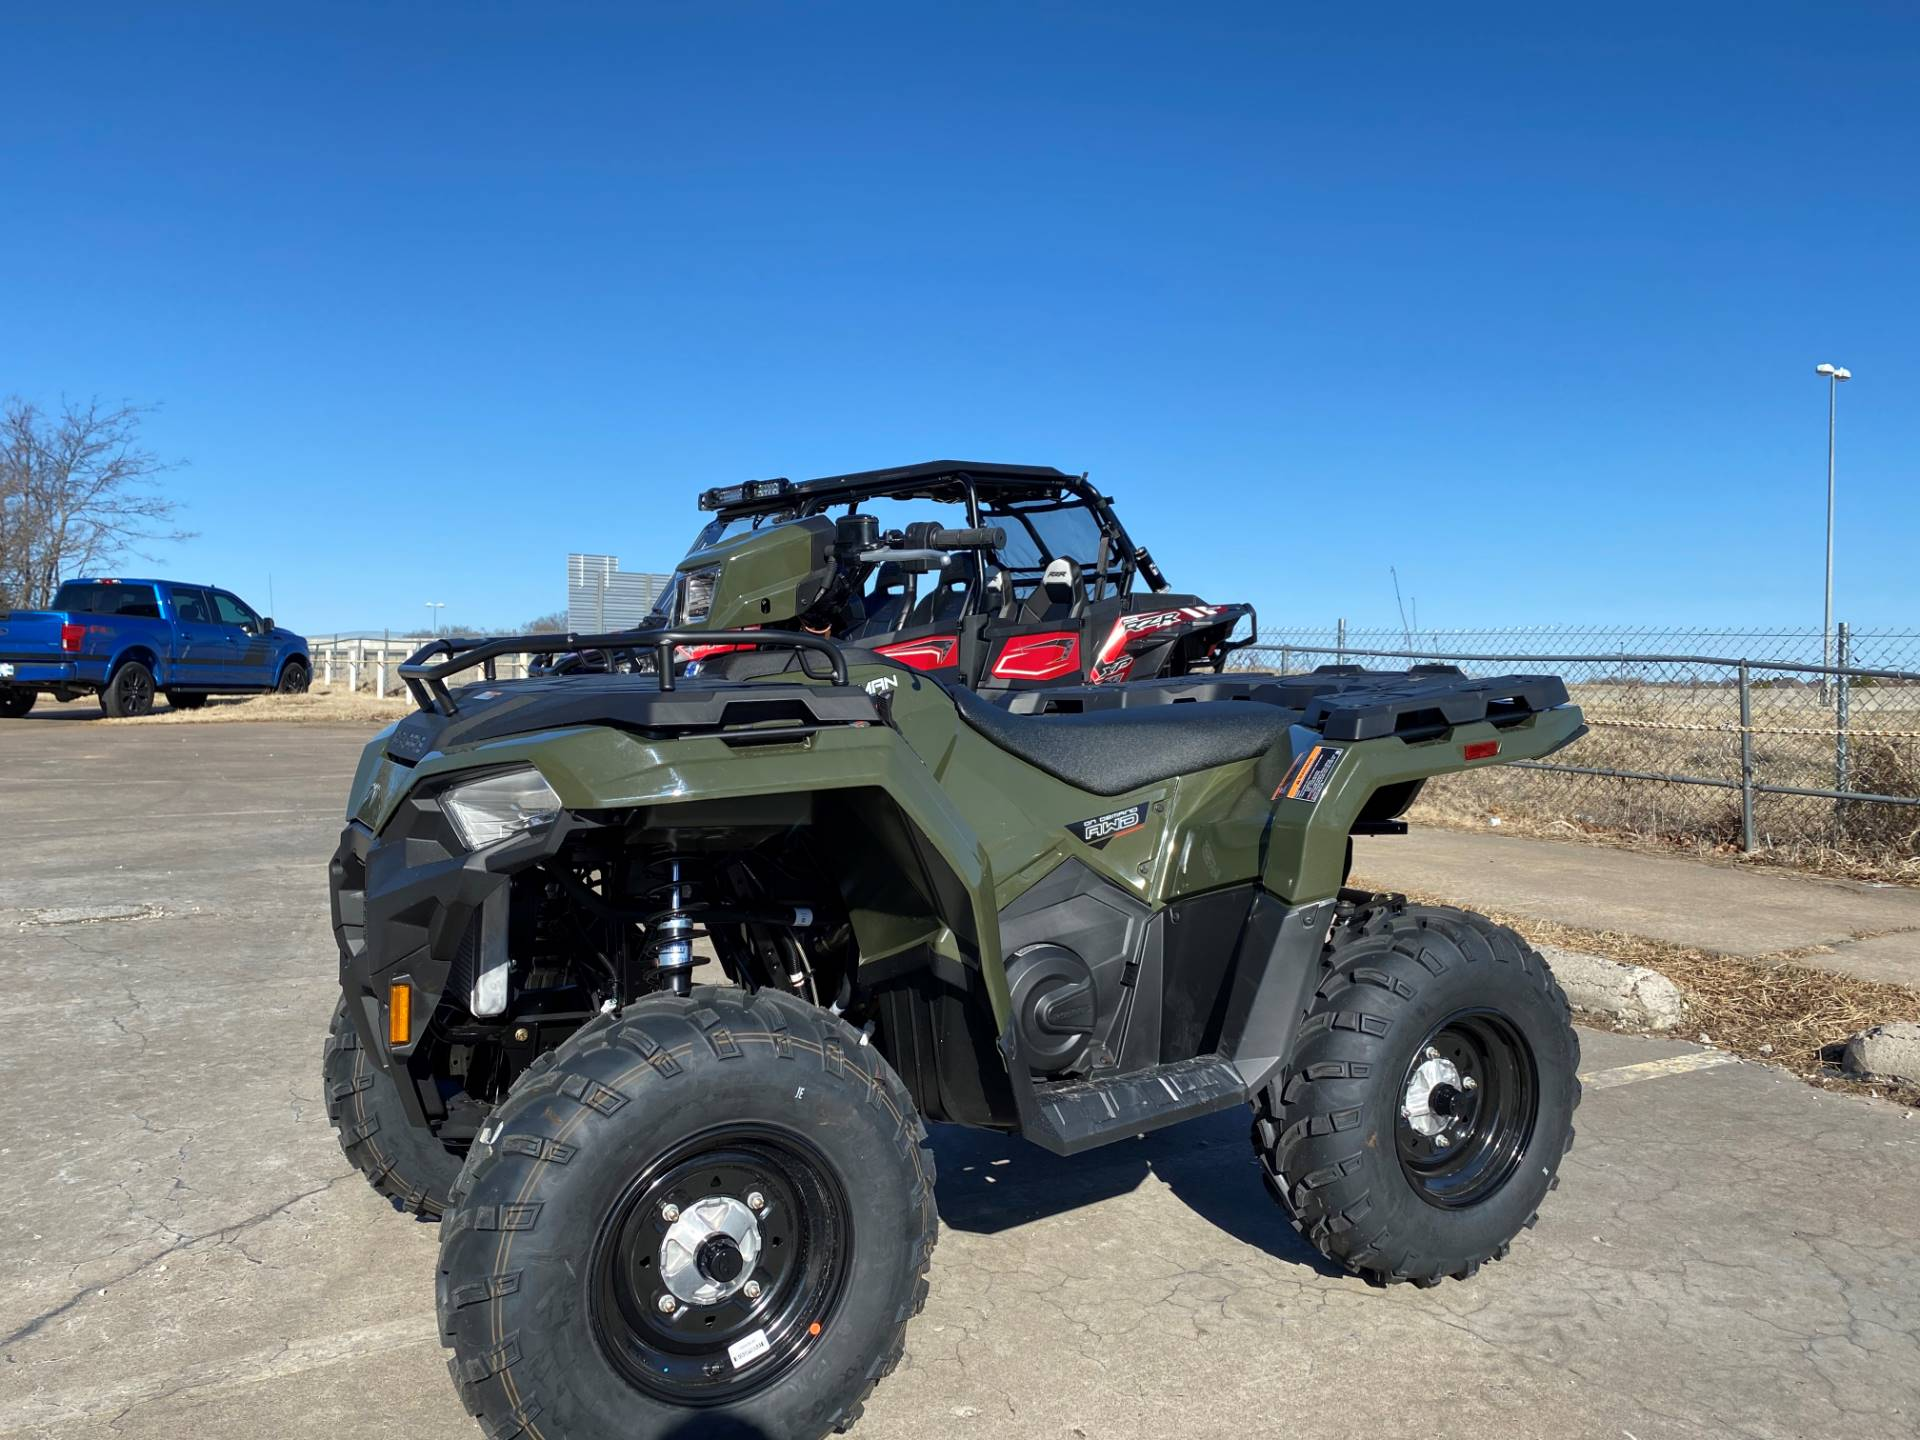 2021 Polaris Sportsman 450 H.O. in Broken Arrow, Oklahoma - Photo 3